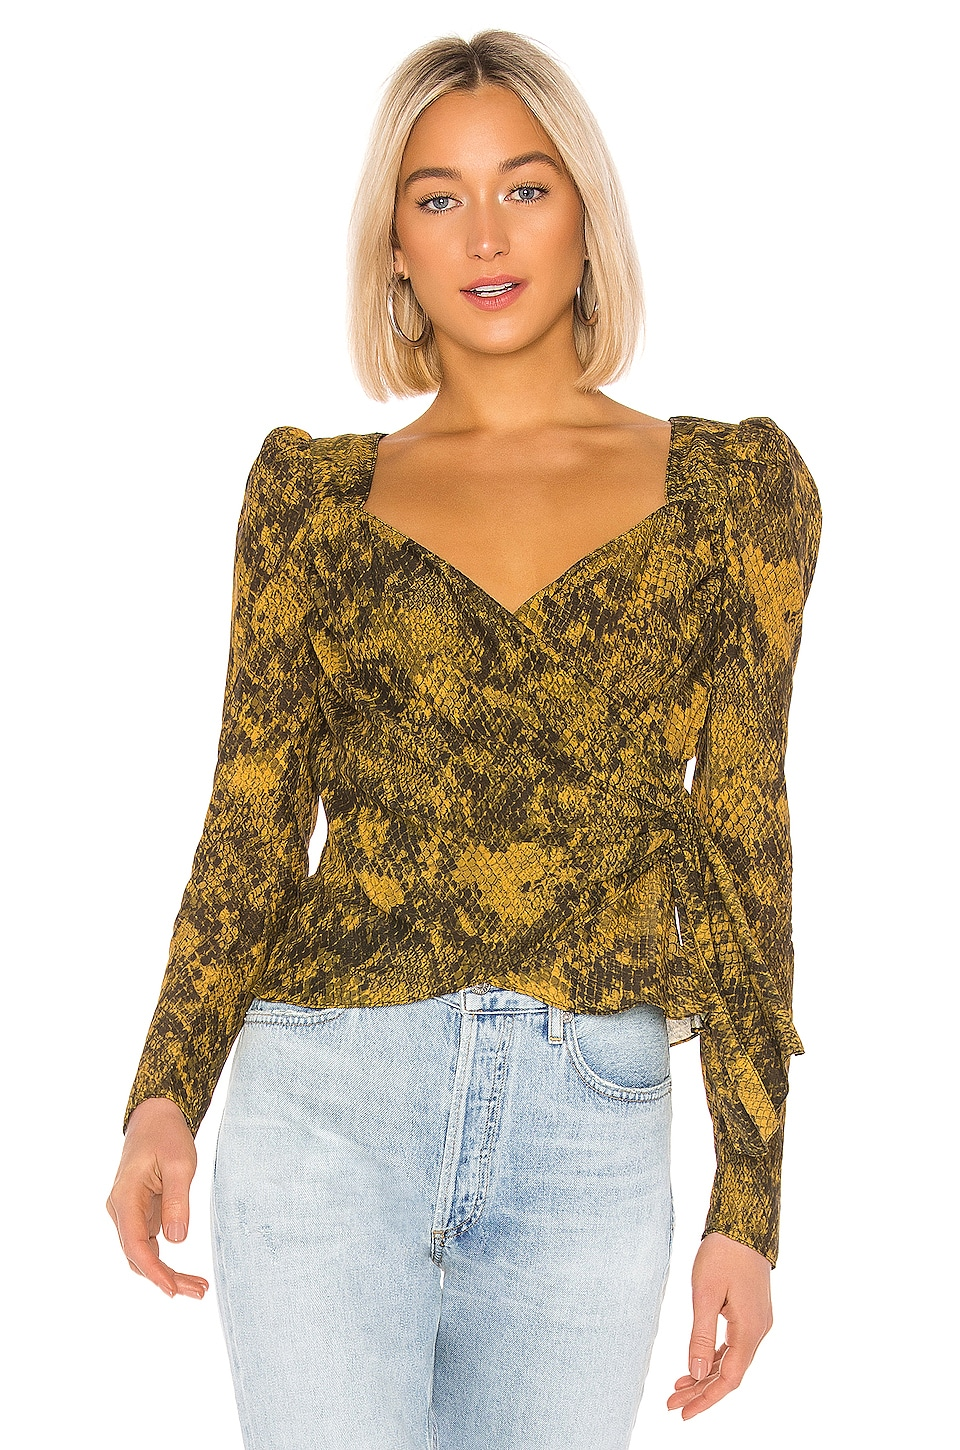 Saylor Accessories Leonie Blouse